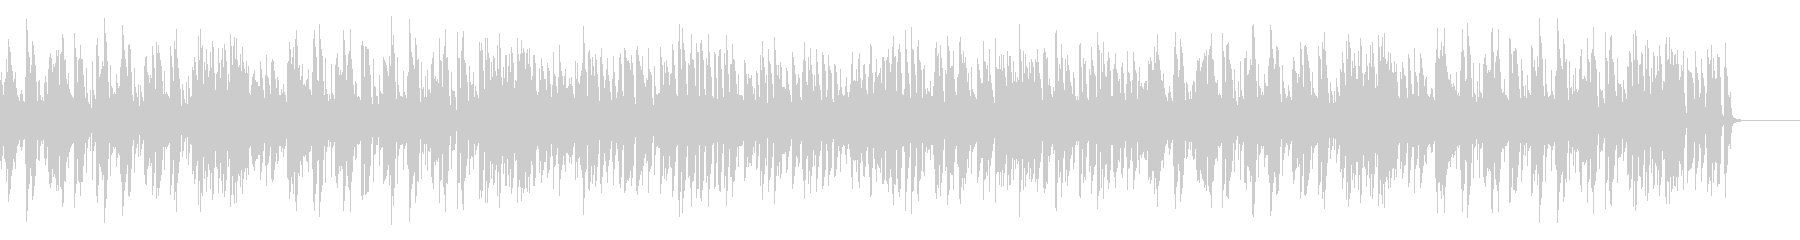 A stylish and mellow royal road jazz piano's unreproduced waveform